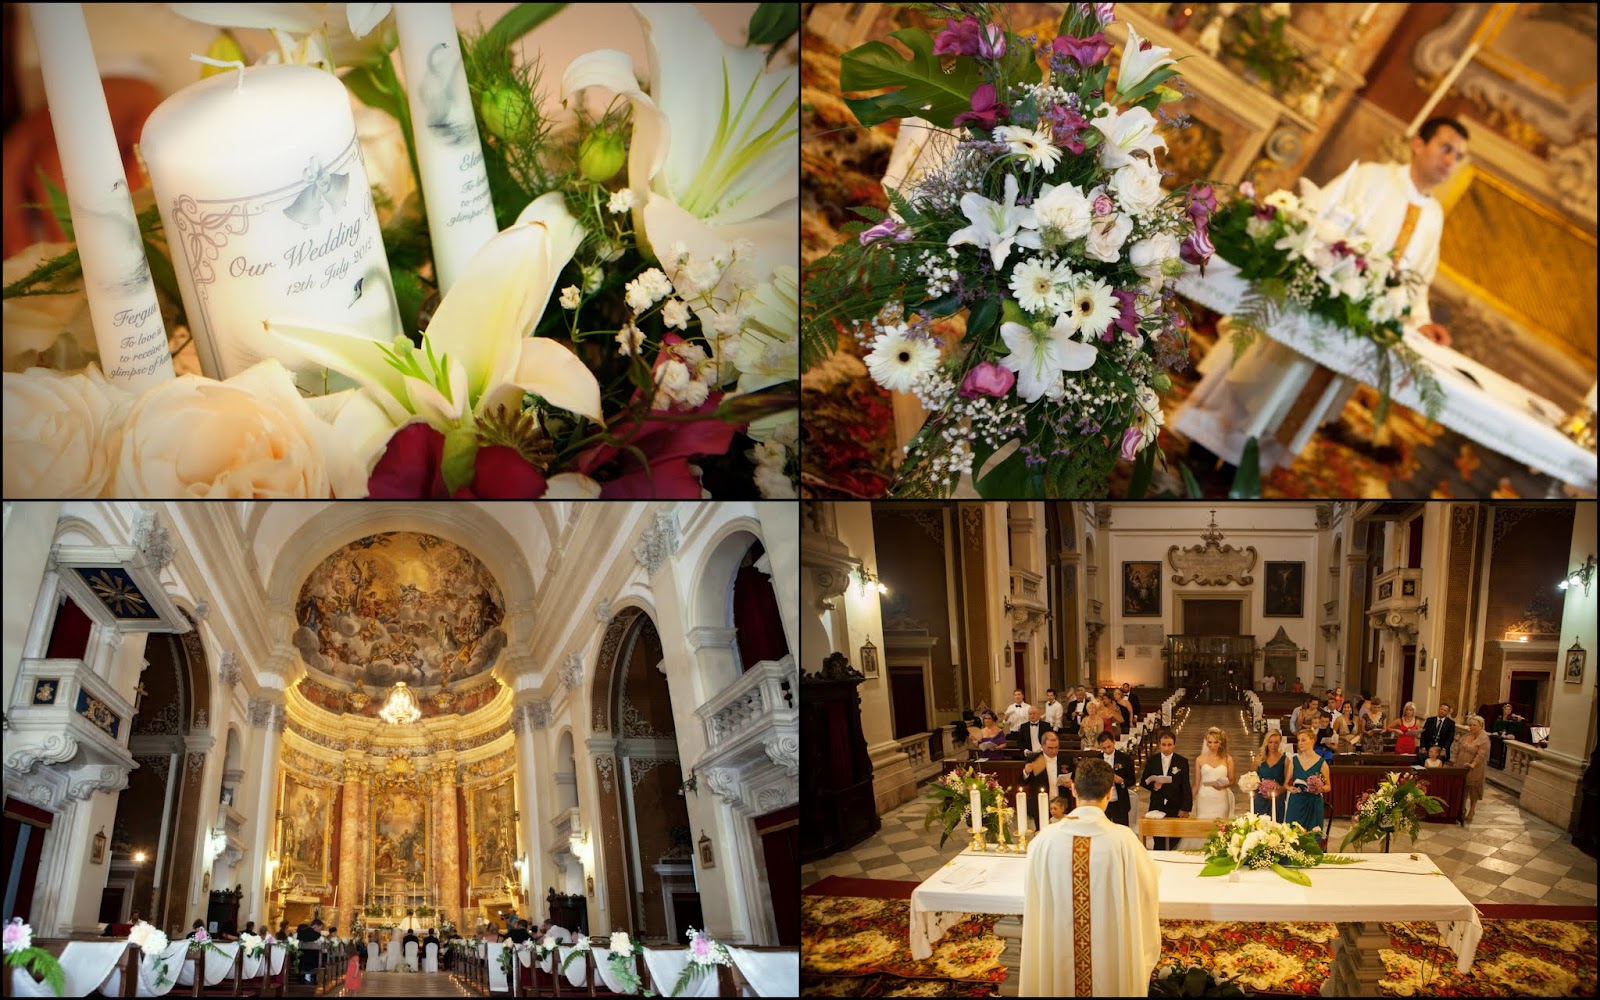 Hotel Kazbek in Dubrovnik: ideal for exclusive private weddings ...